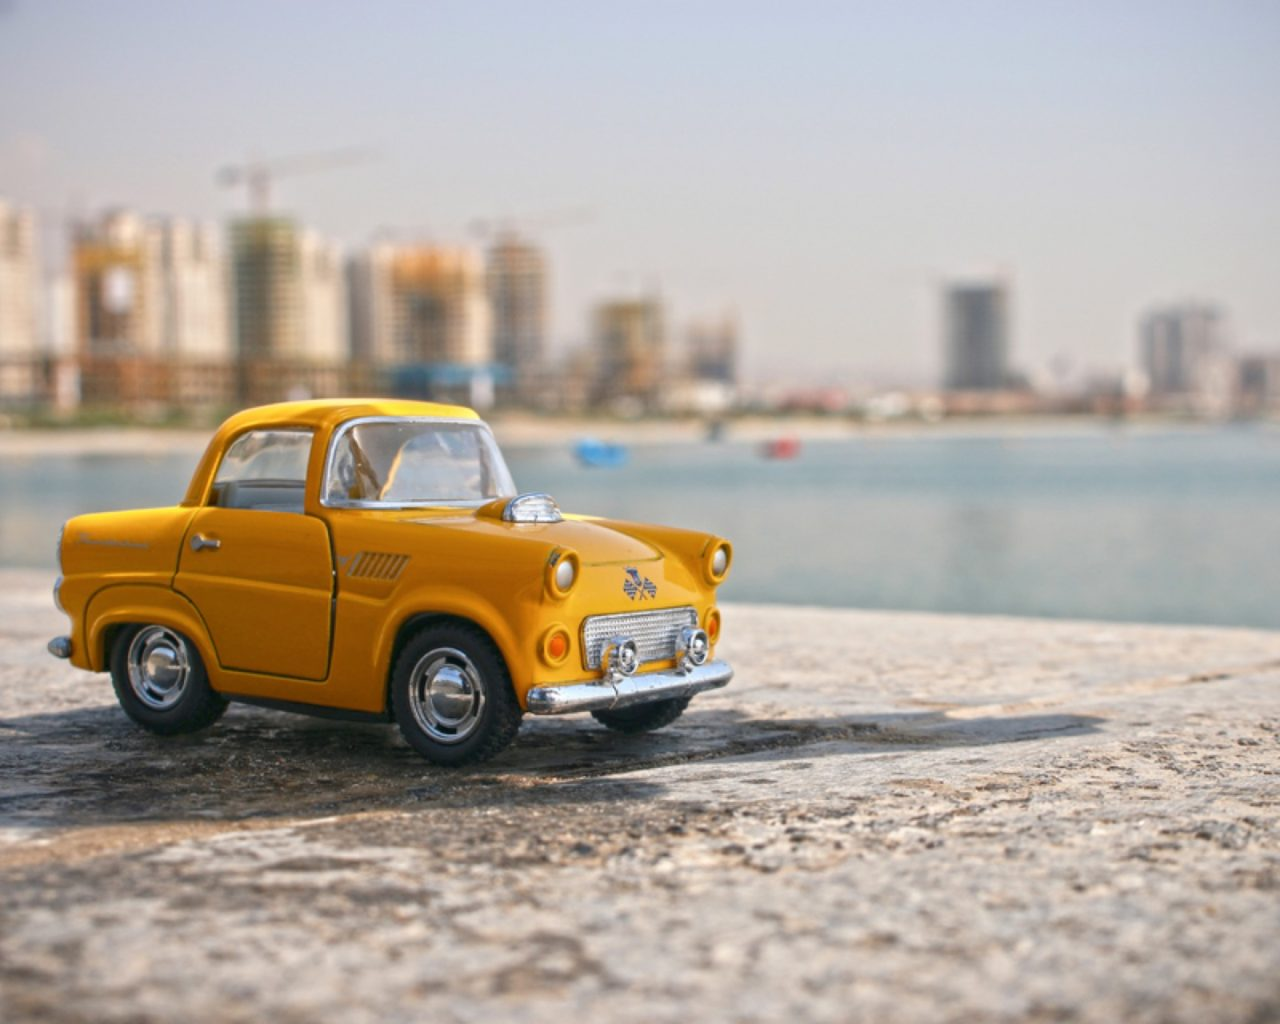 https://thesubmarine.it/wp-content/uploads/2019/11/small-yellow-car-on-the-beach_800-1280x1024.jpg